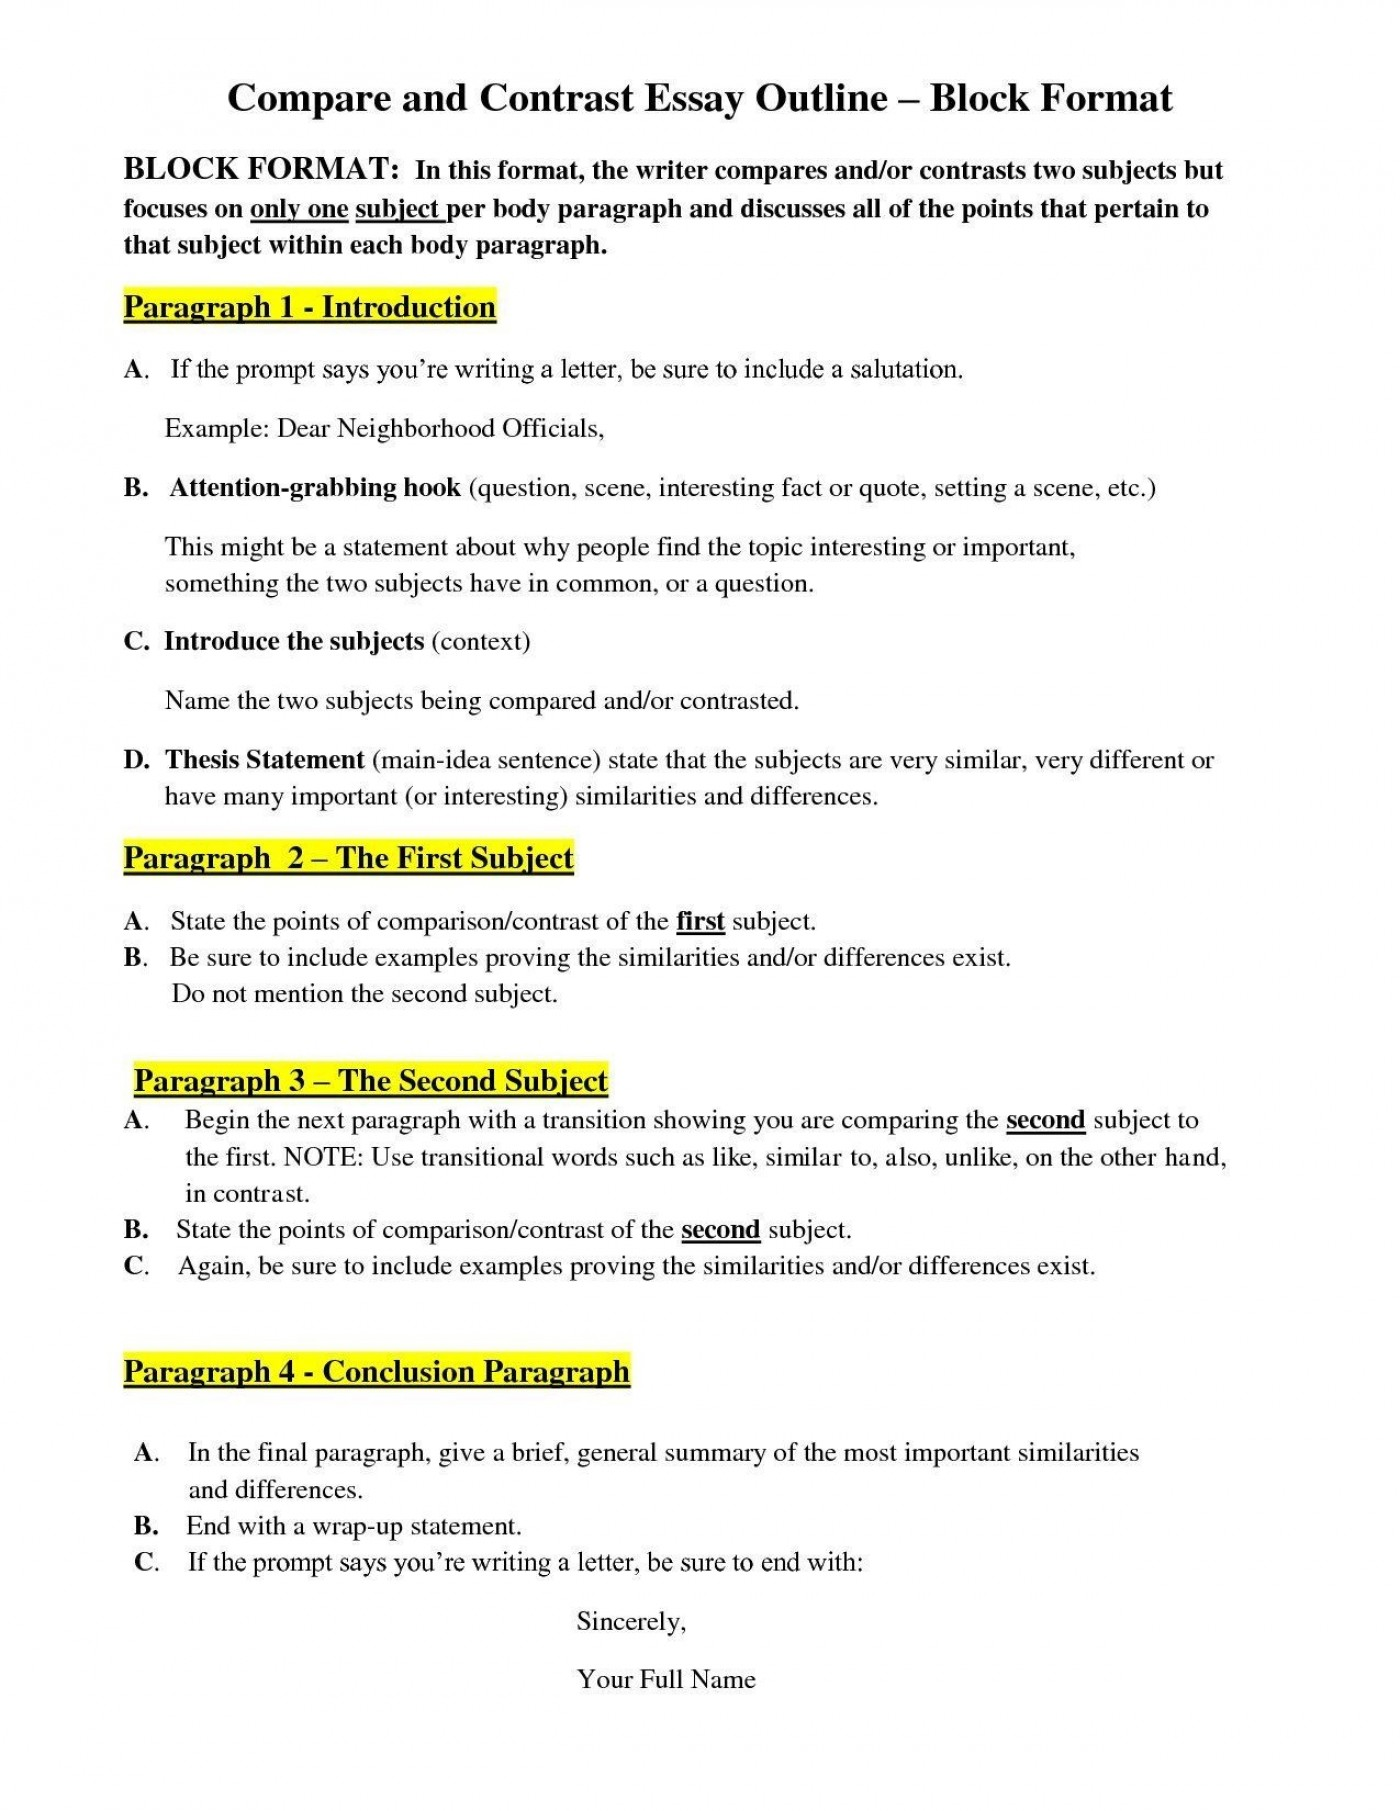 014 Essay Examplempare Andntrastmparison Best Examples Of Scenario In 6th Grade An Goo 3rd Food 5th Middle School Block Format Pdf High 4th Vs Striking Compare And Contrast Example Comparison Free For 1400